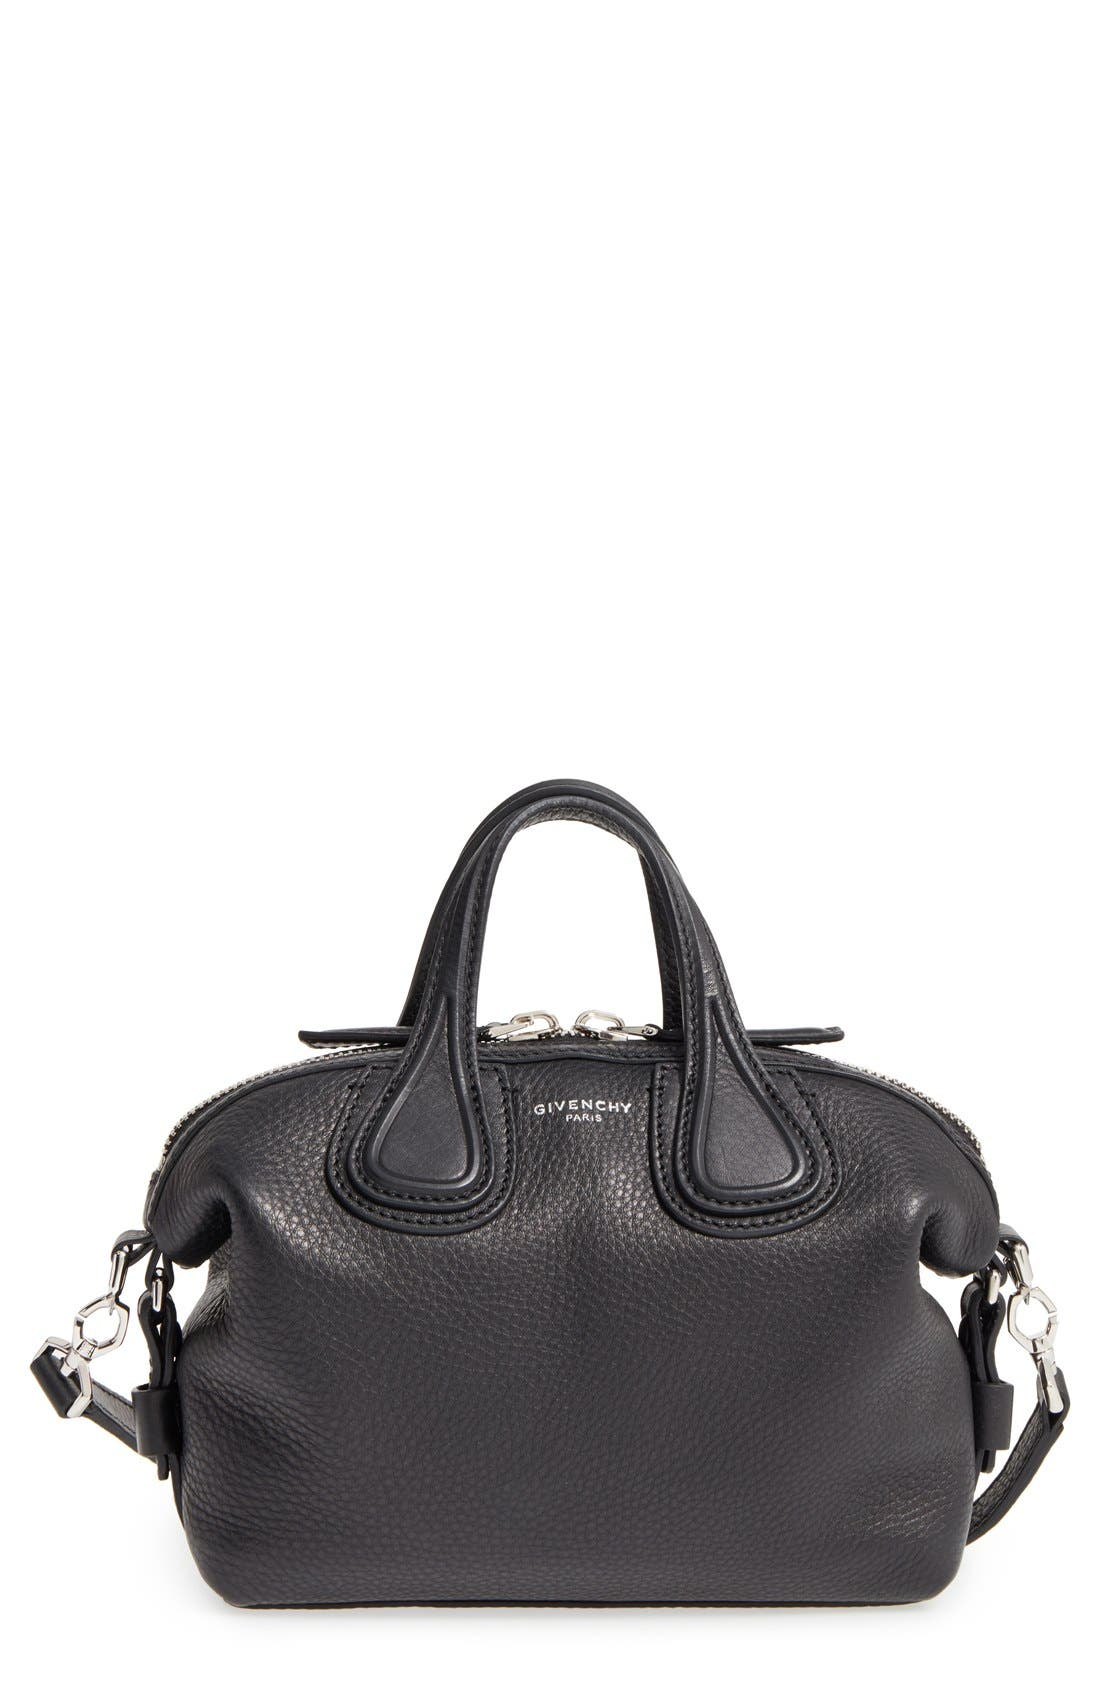 Micro Nightingale Leather Satchel,                         Main,                         color, Black